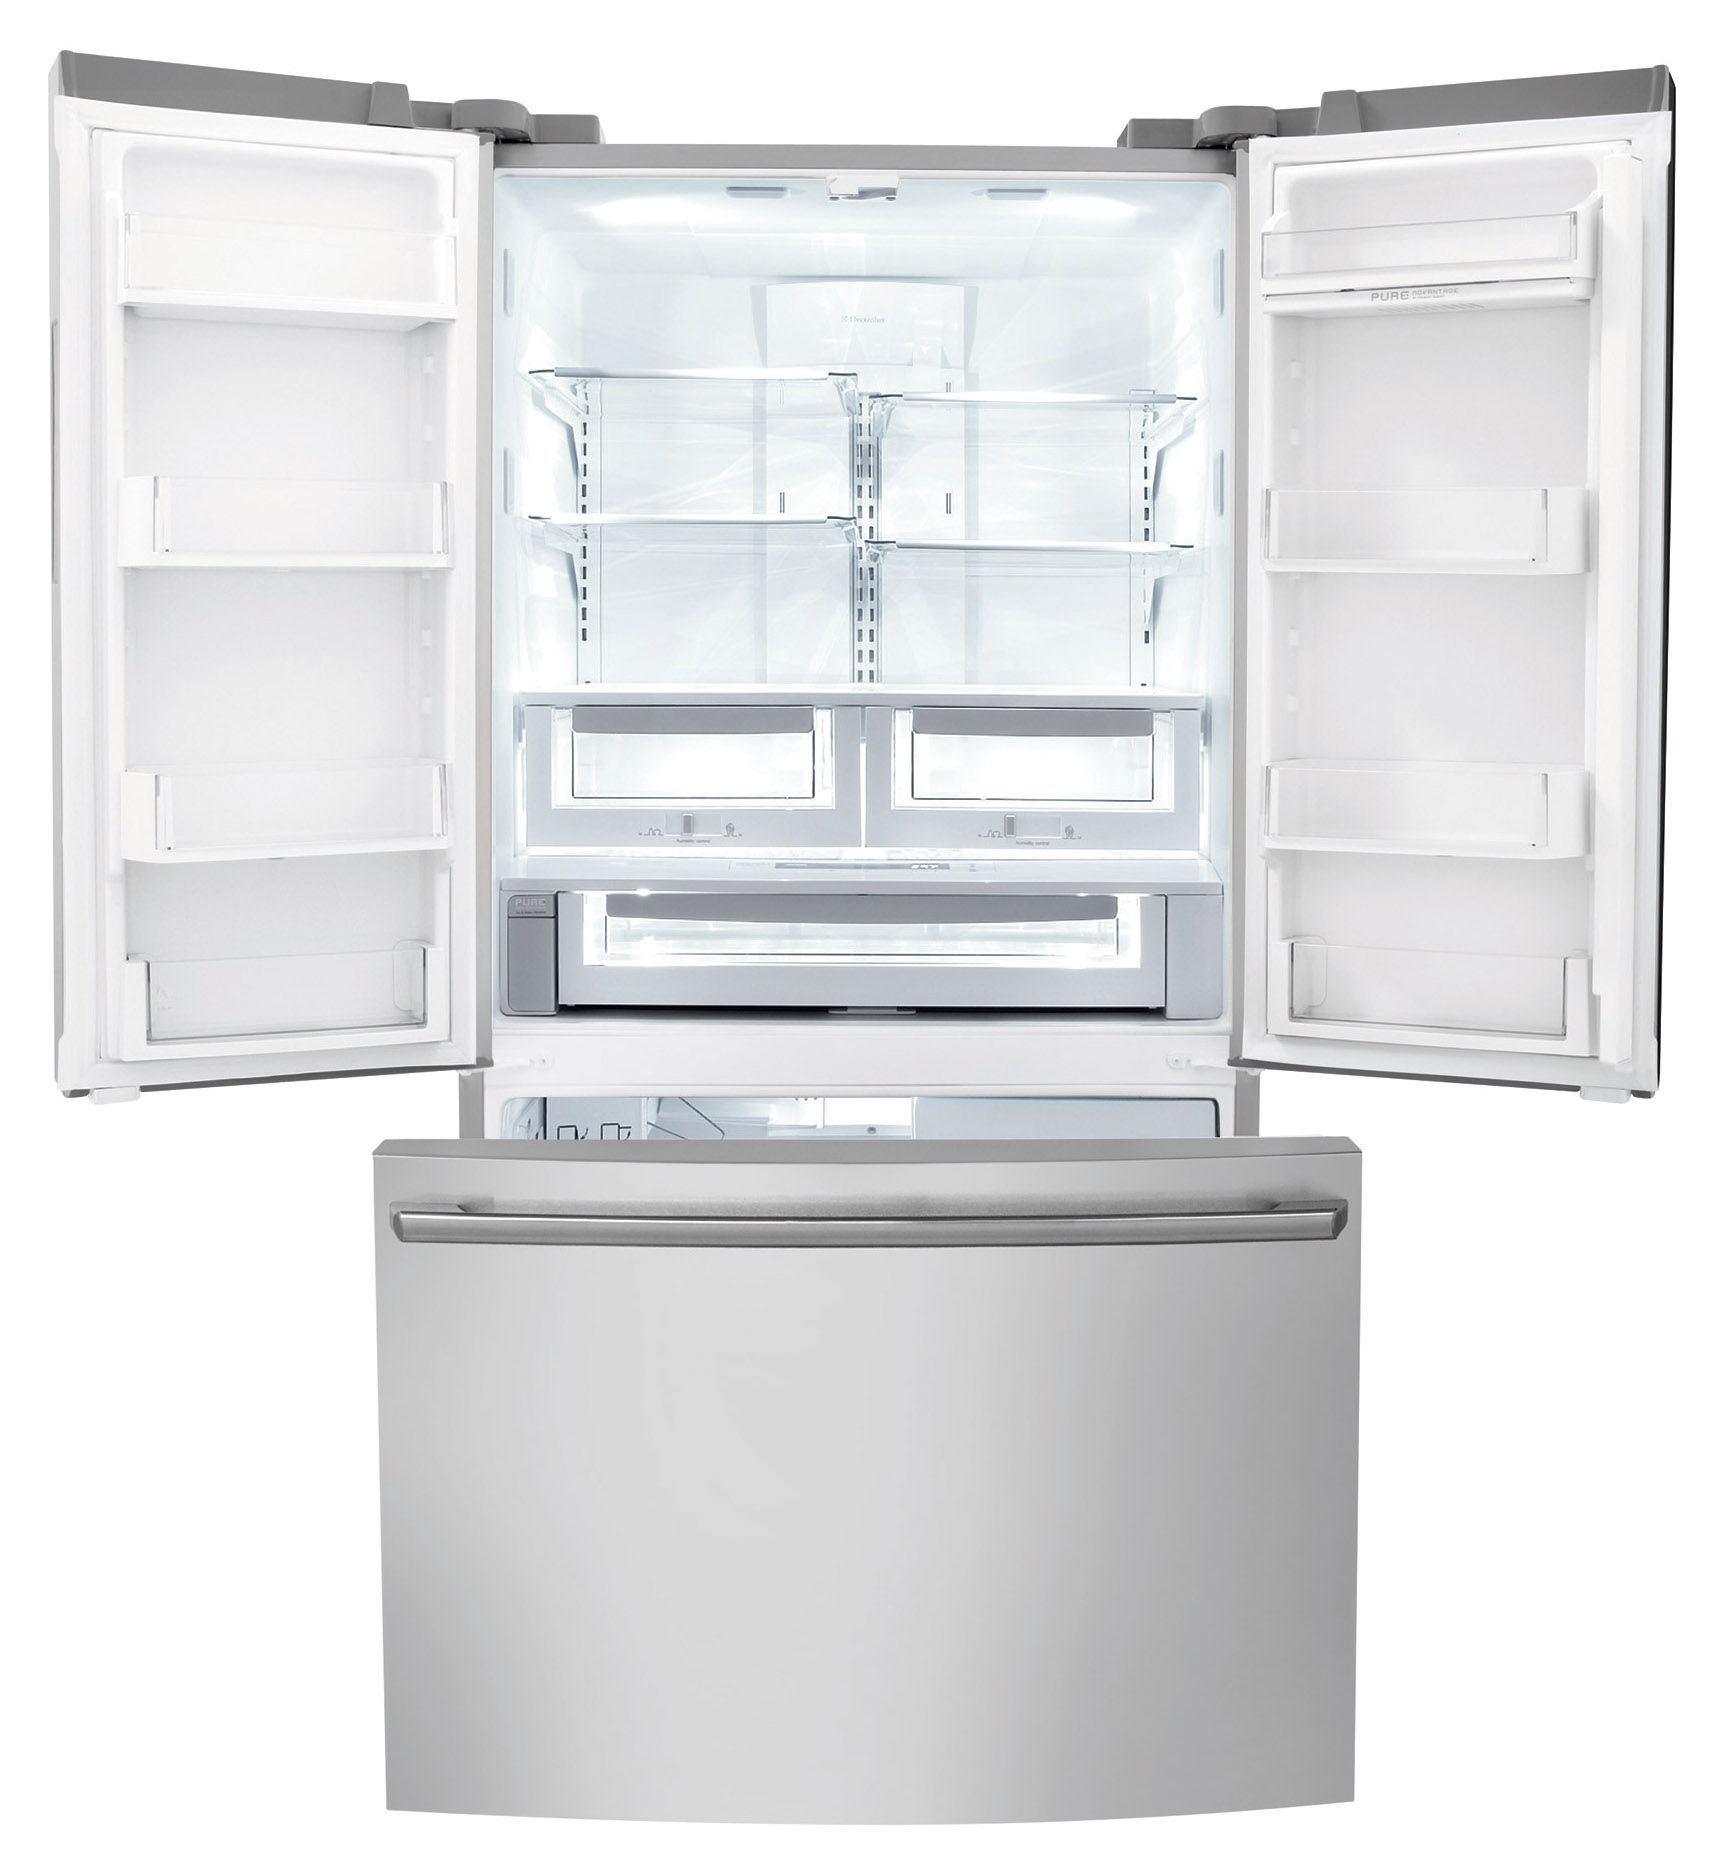 Electrolux EI28BS80KS 27.7 cu. ft. French Door Refrigerator with IQ-Touch™ Controls - Stainless Steel